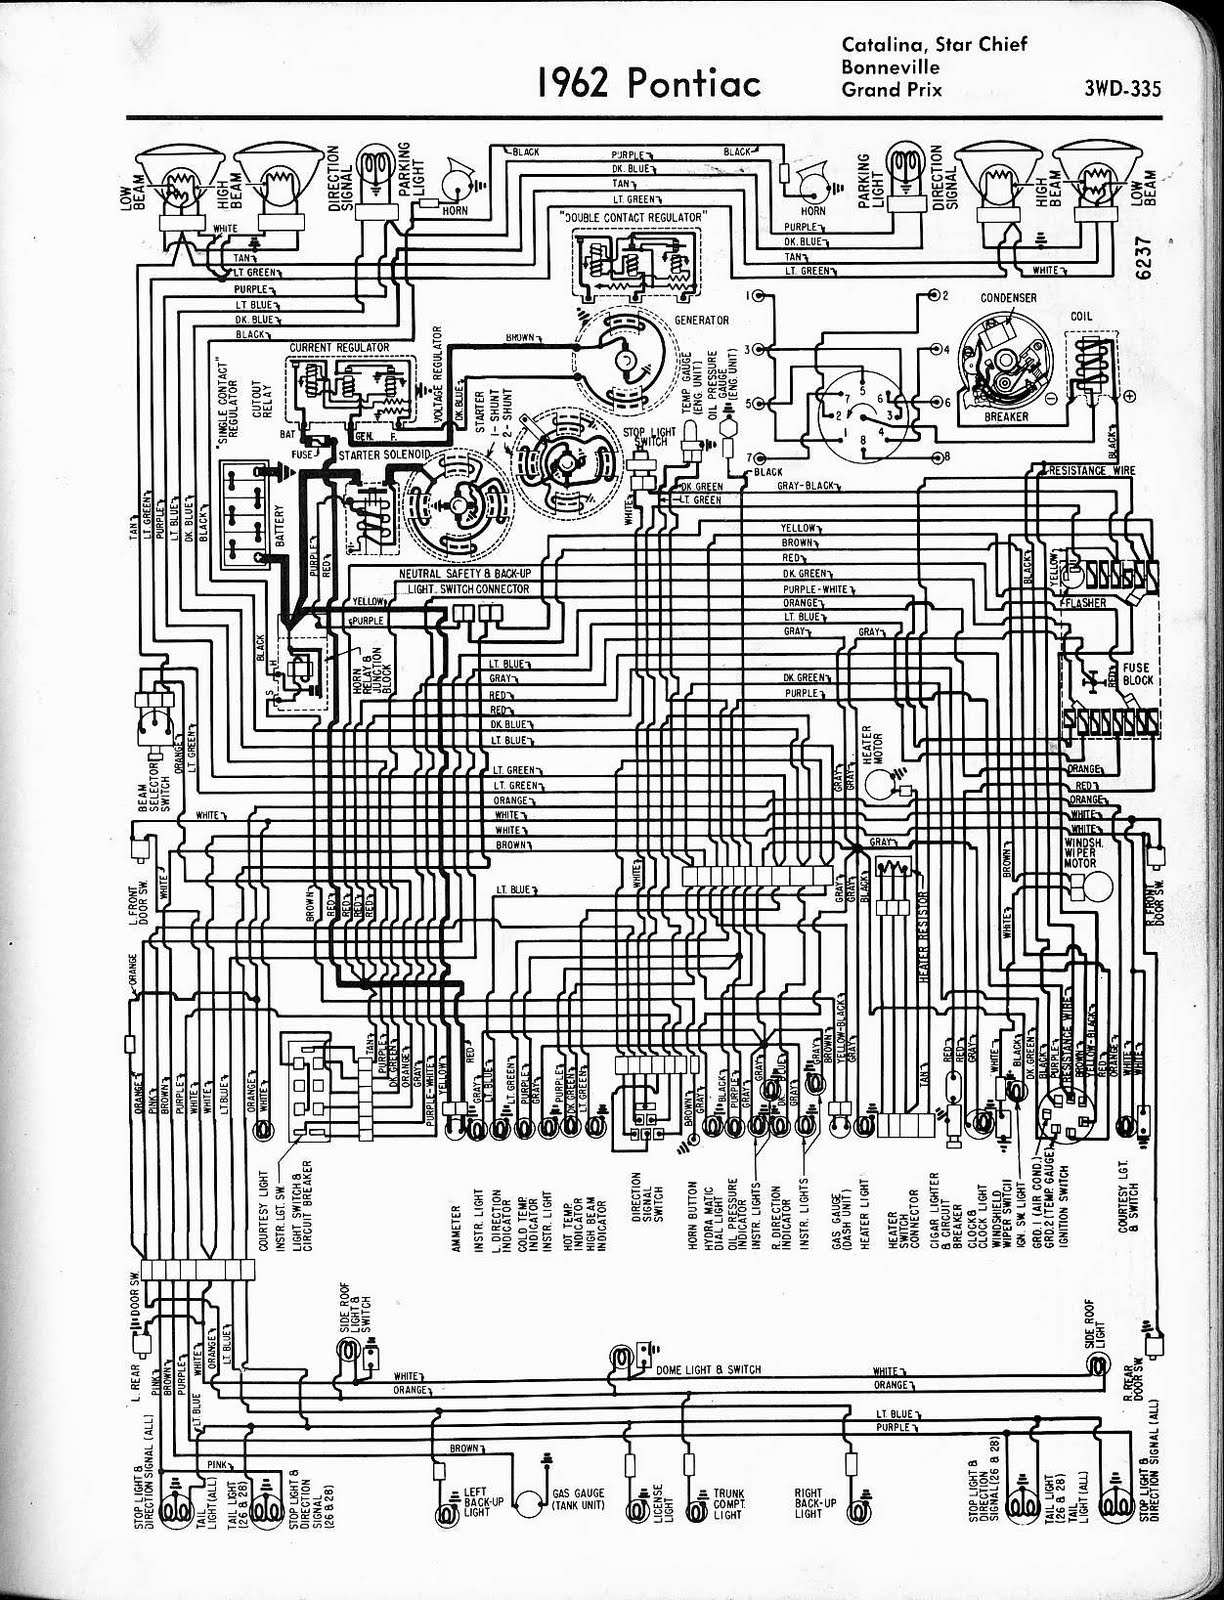 1967 Chevy Impala Fuse Box Diagram Diy Enthusiasts Wiring Diagrams 1968 1969 Schematics U2022 Rh Seniorlivinguniversity Co 2004 Location